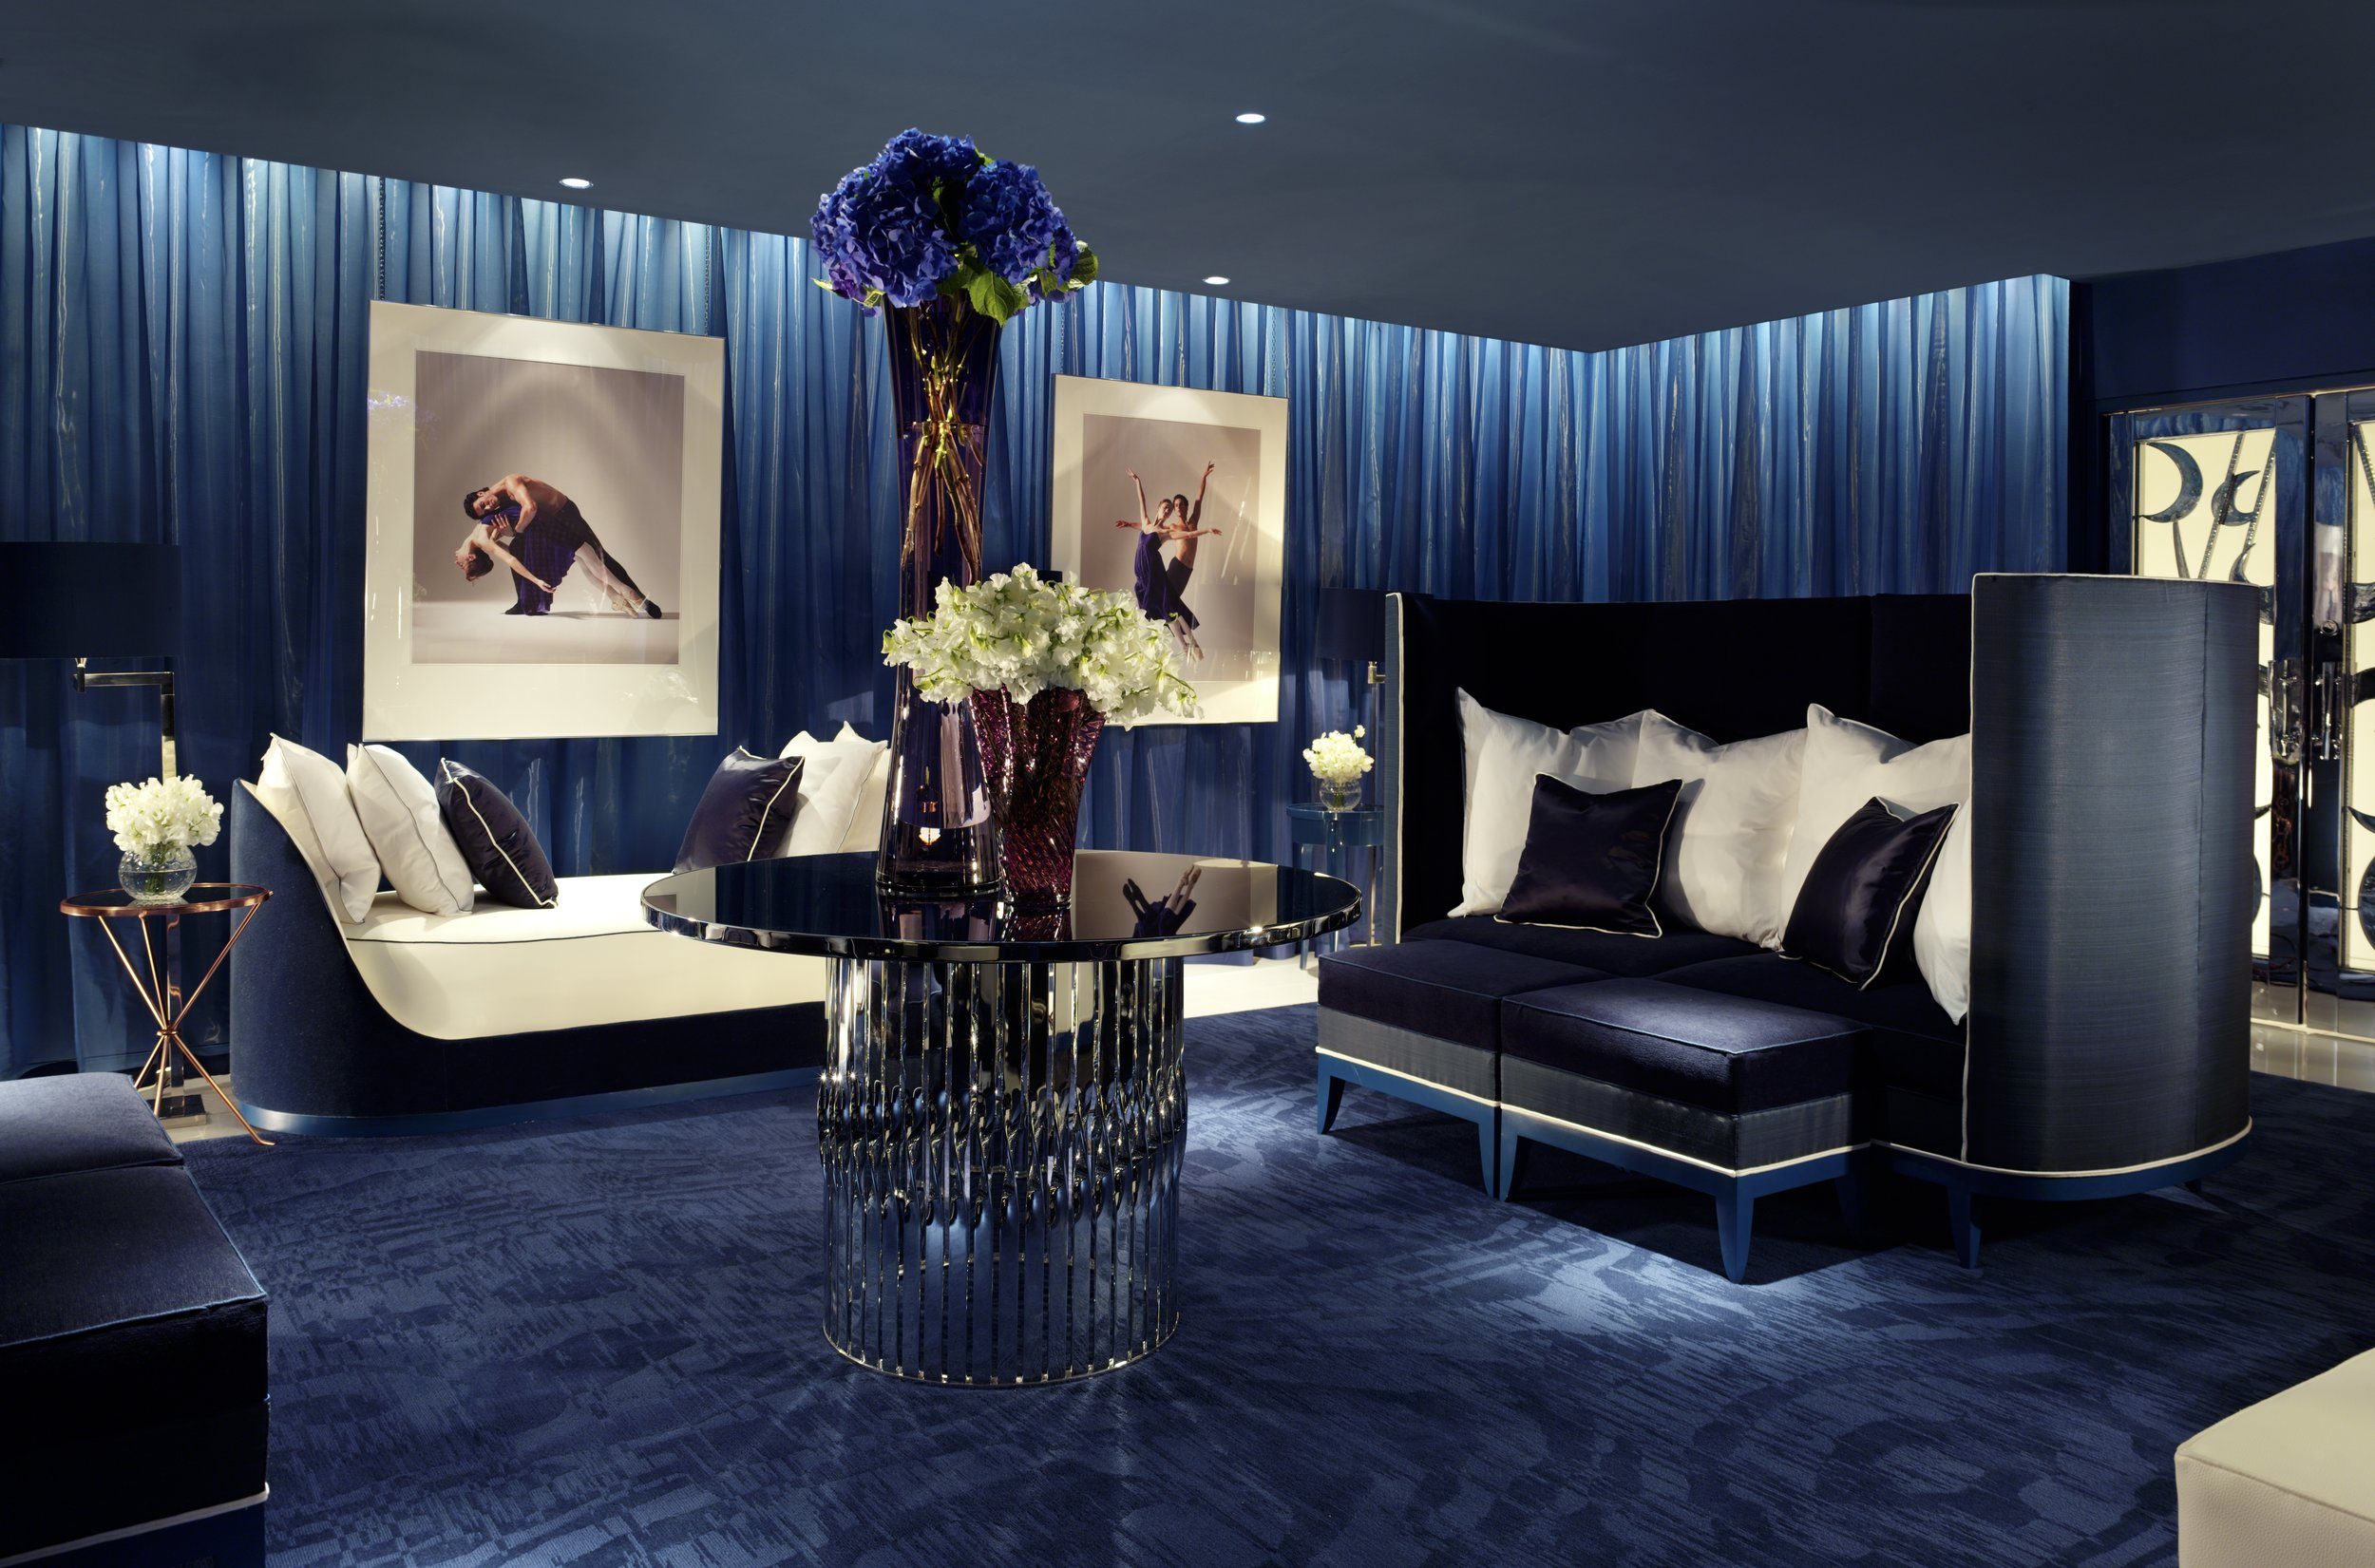 Spa - The Dorchester Spa Relaxation Room